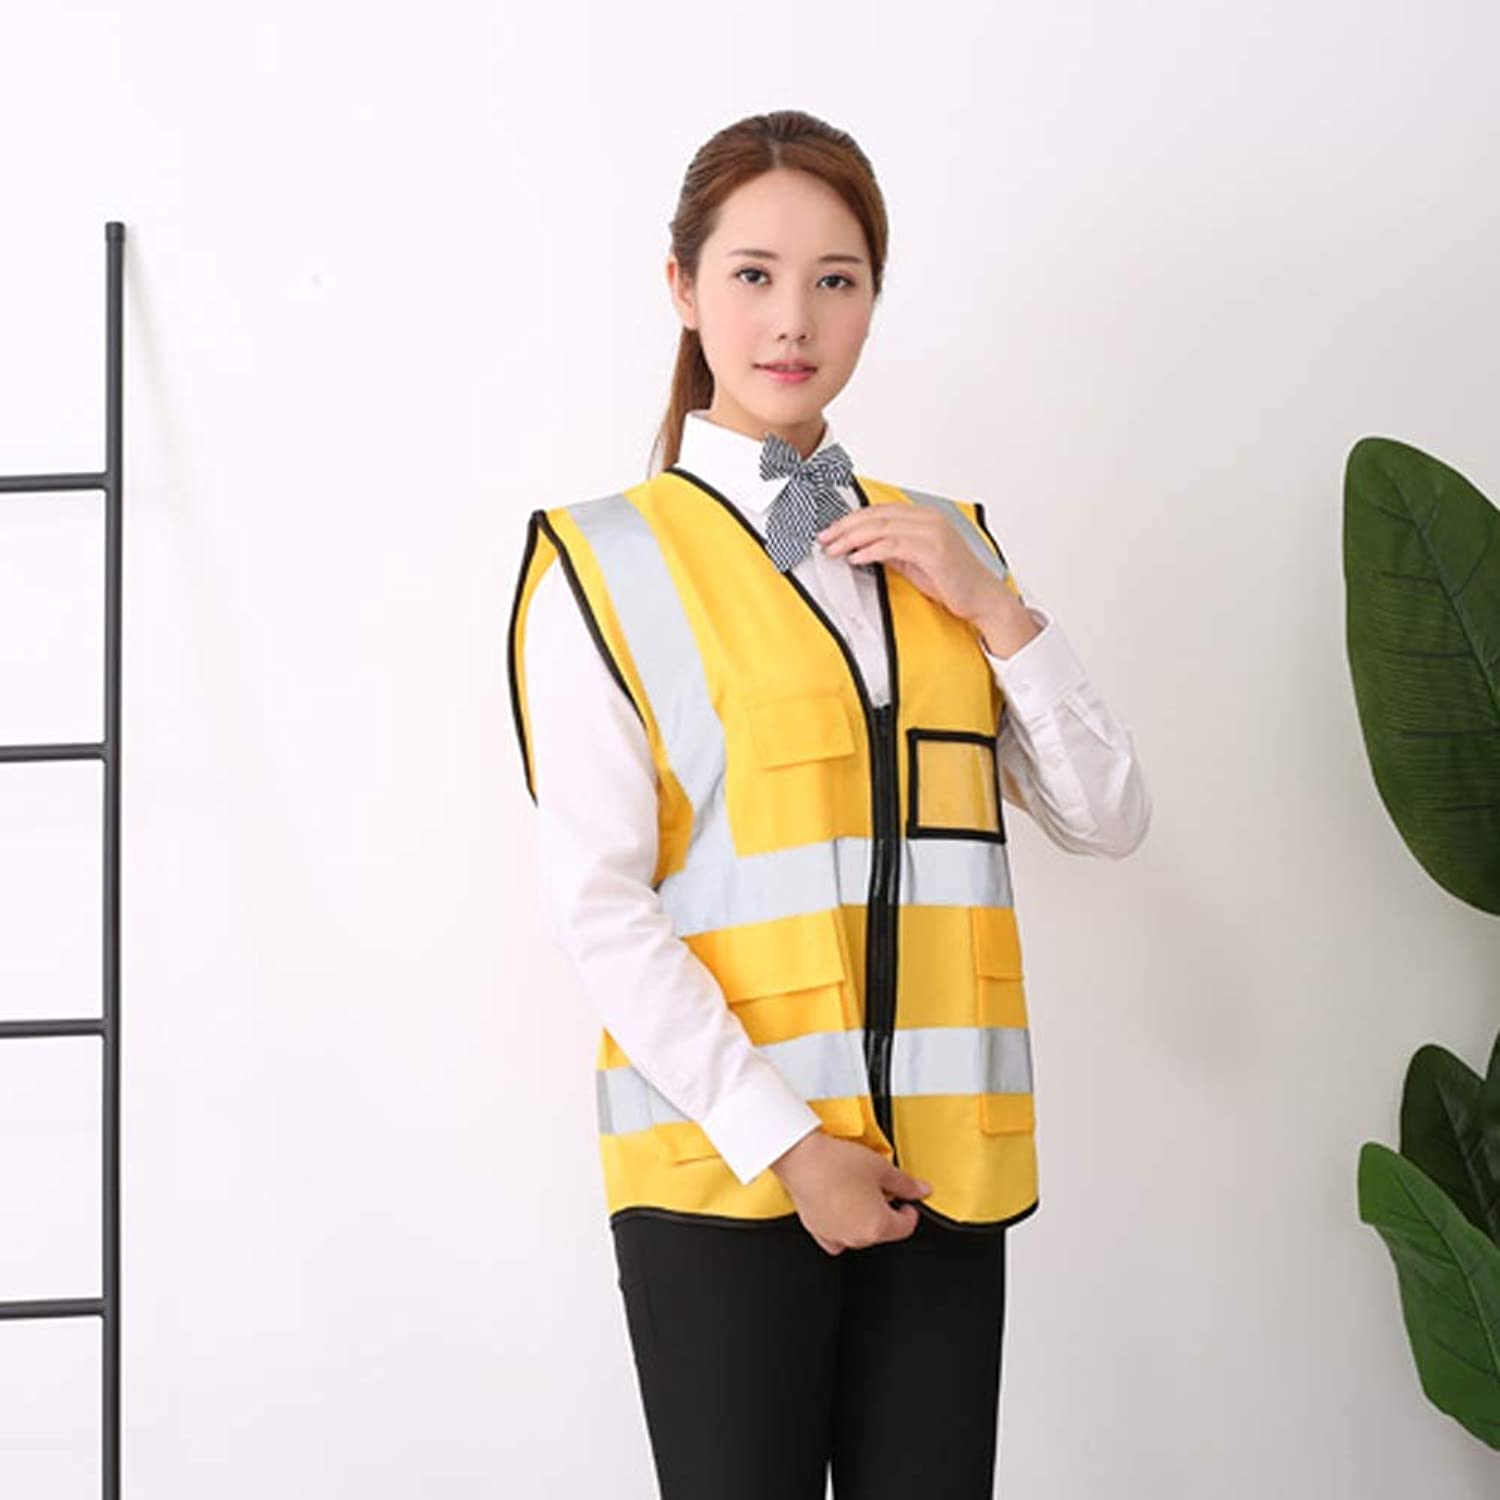 YJLGRYF Pockets High Visibility Zipper Front Breathable Safety Vest with Reflective Strips, Uniform Vest 44.9x25.98inches